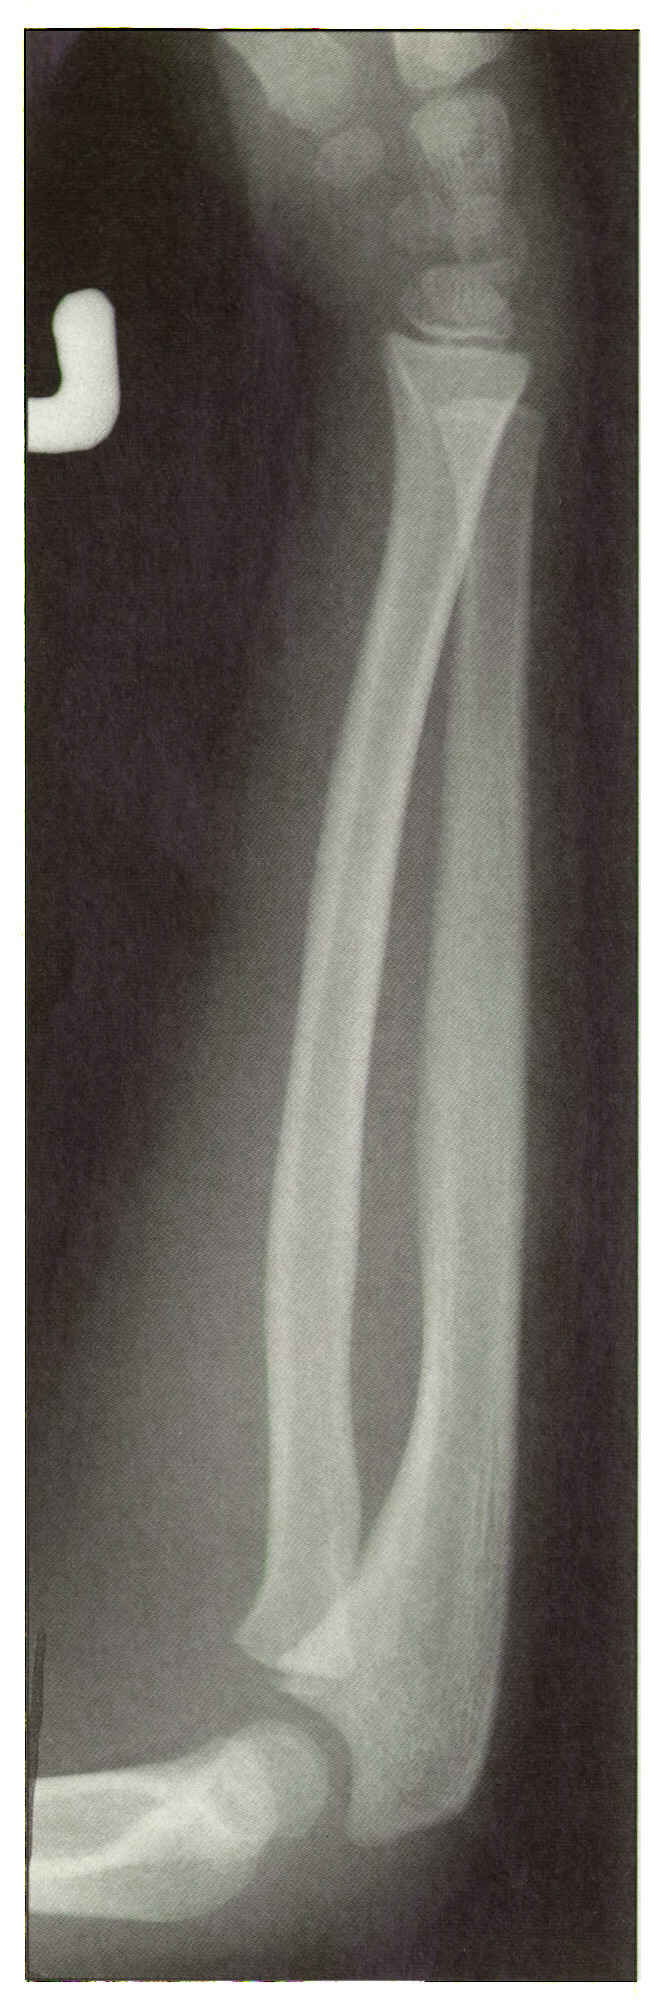 Figure 9. This is the fracture most likely to displace in children. It also has the greatest ability to remodel. However, parents do not think much of having a child with a temporarily crooked wrtst. To avoid this eventuality immobilize the fracture in full pronation or full supination and do not leave it in the midposition.